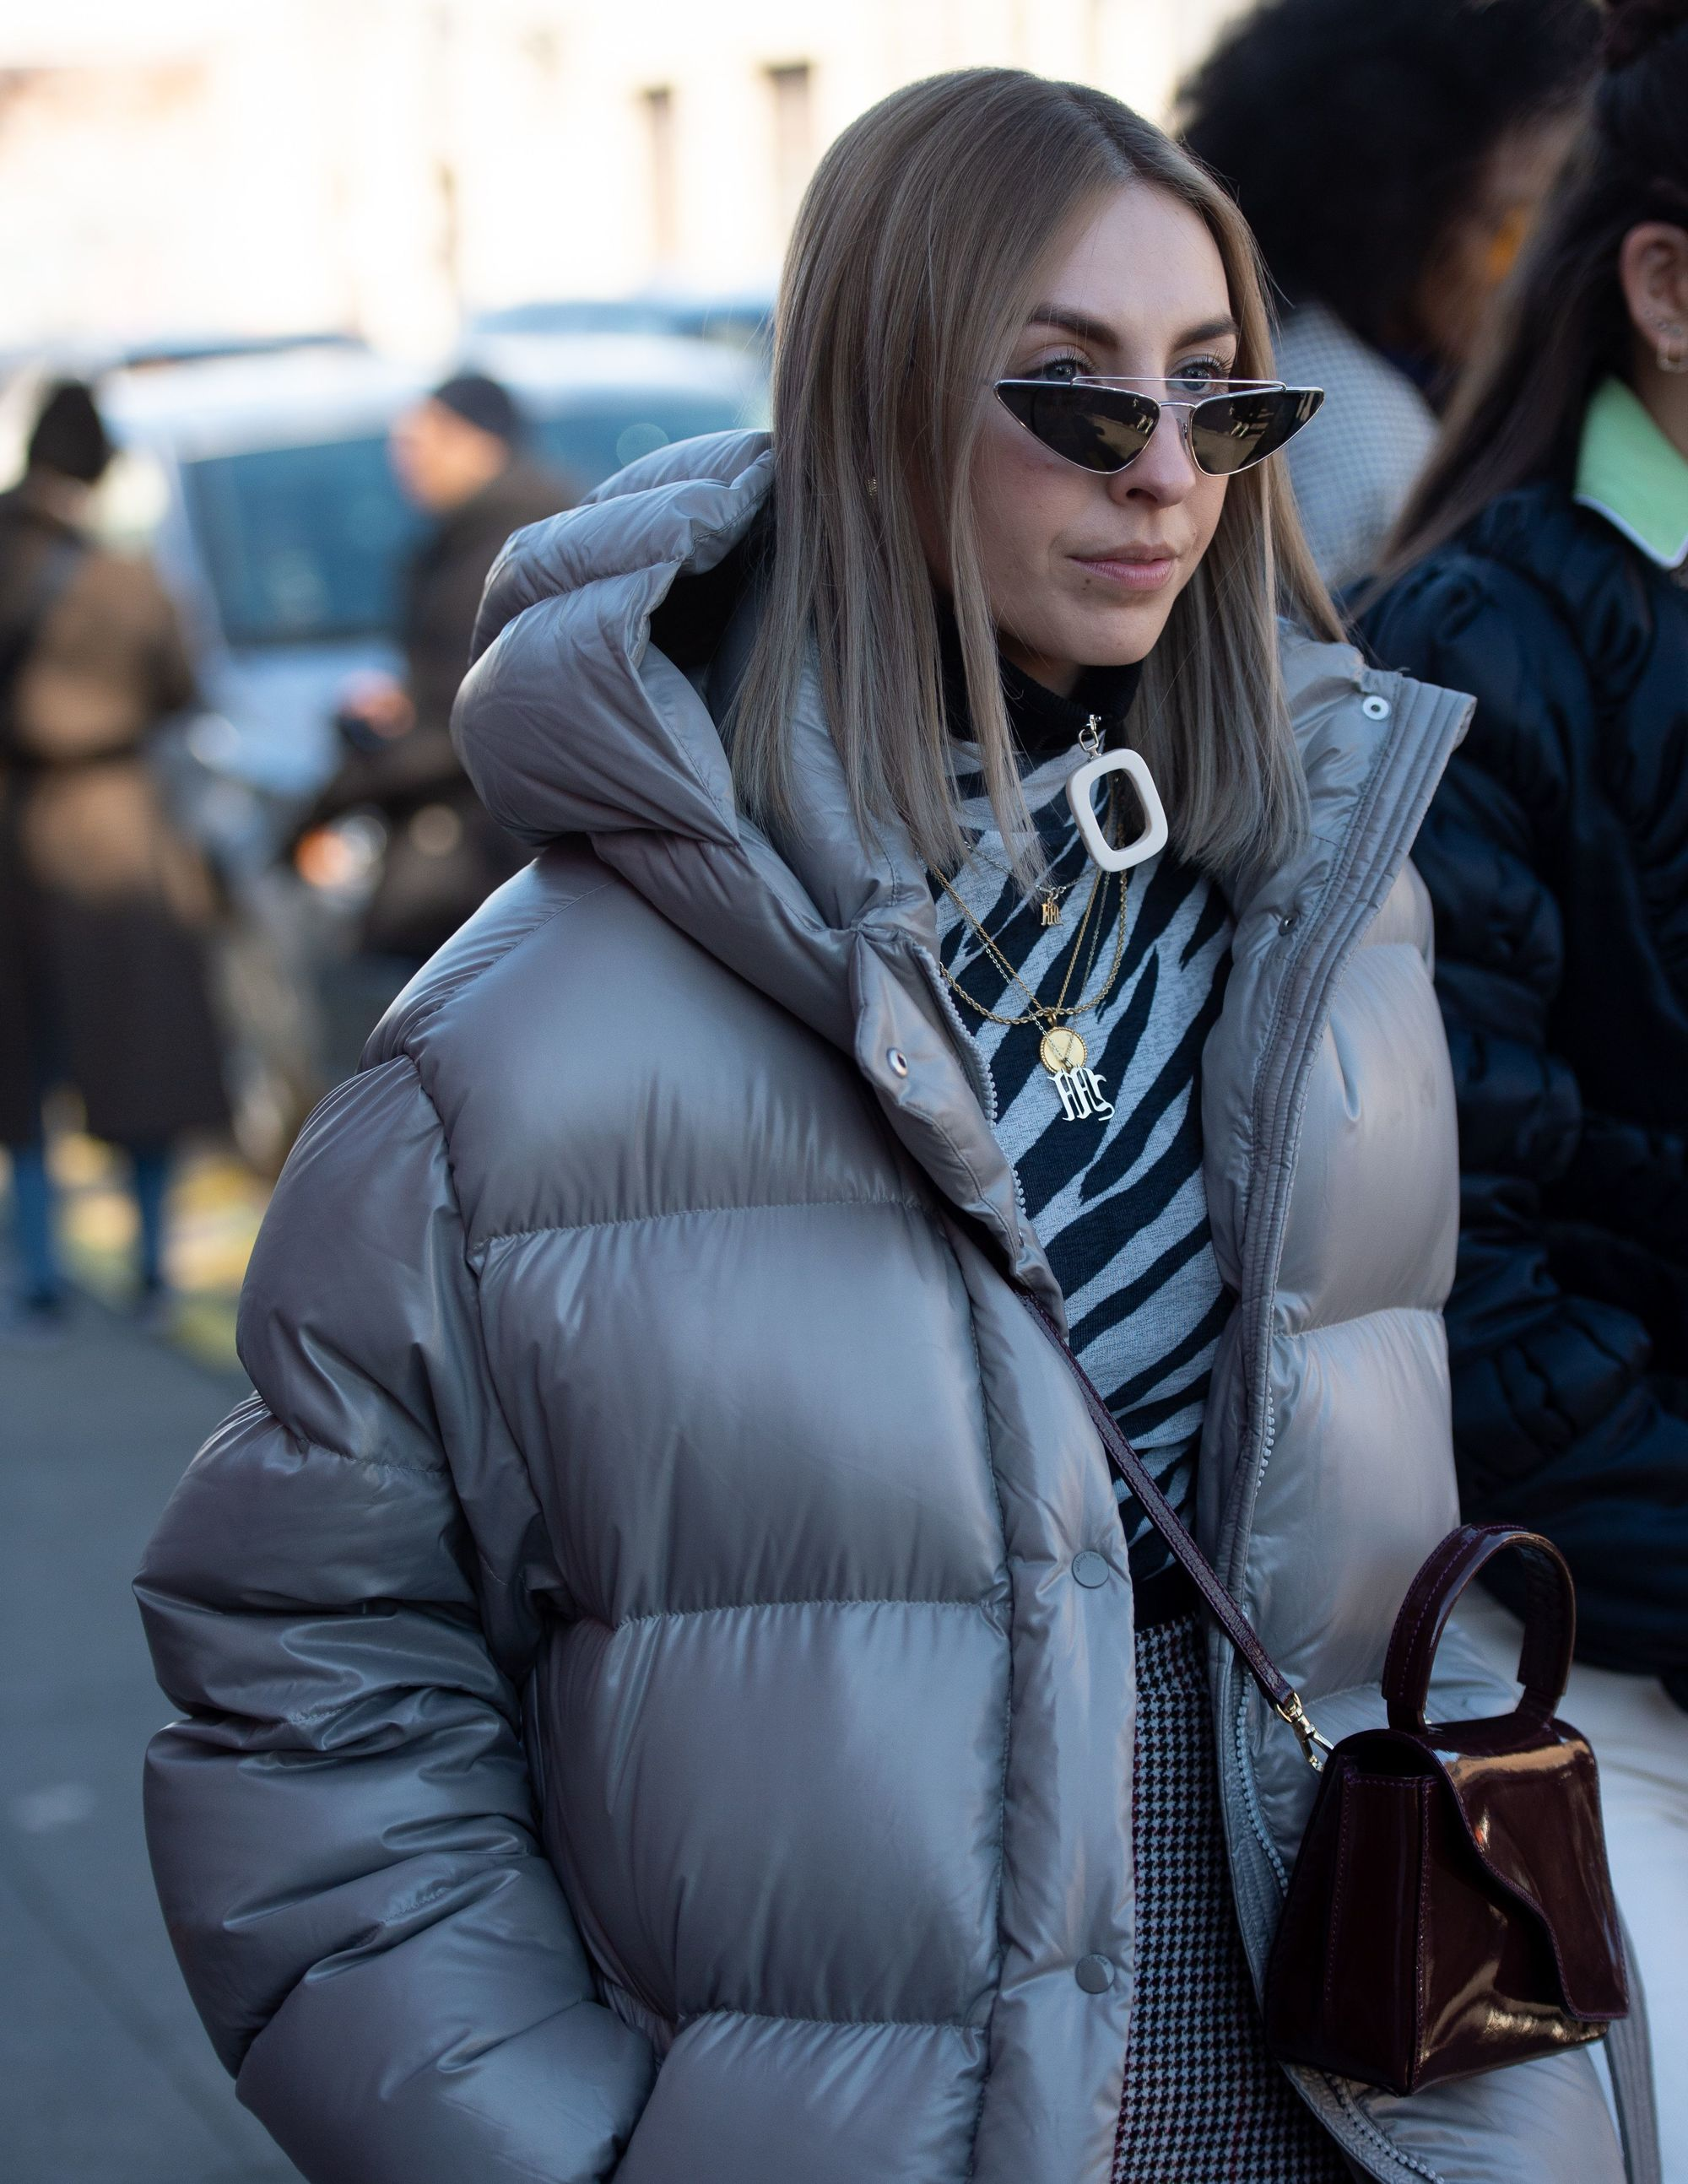 Woman with shoulder length dark brown hair with ash blonde ombre, wearing a grey puffer jacket with micro glasses outside